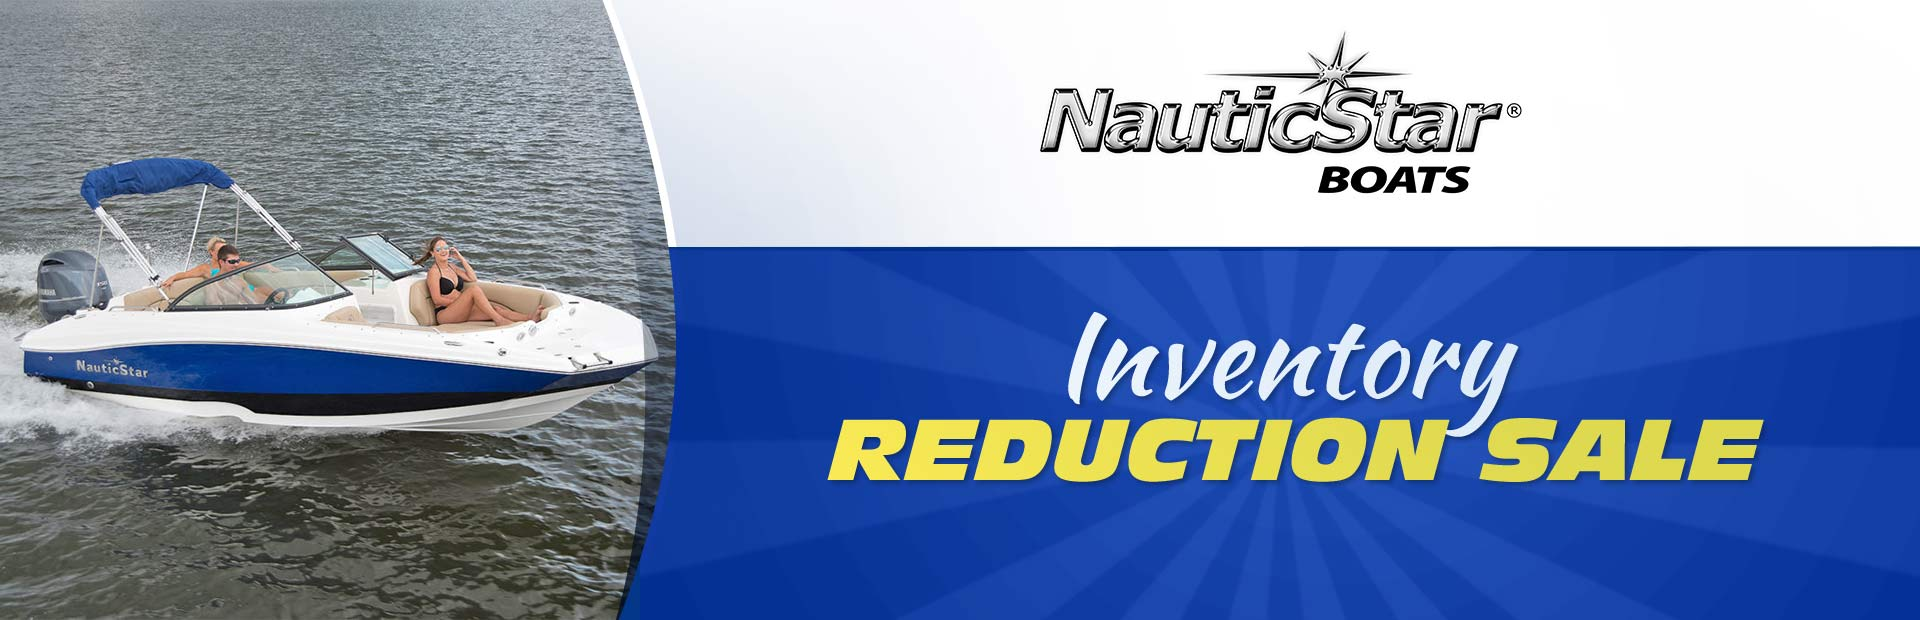 NauticStar Boats: Click here to see our models!